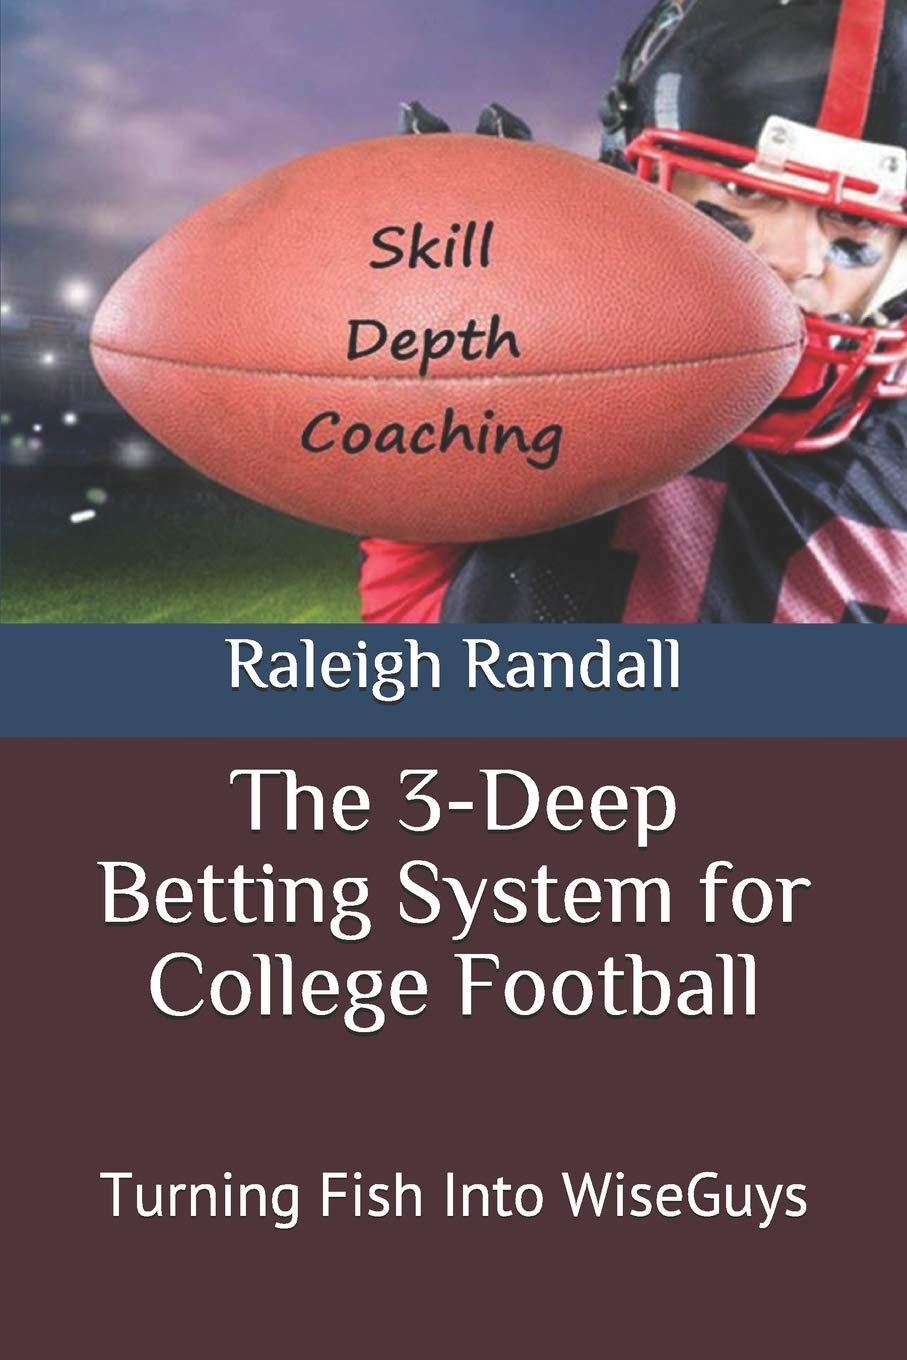 college football betting system